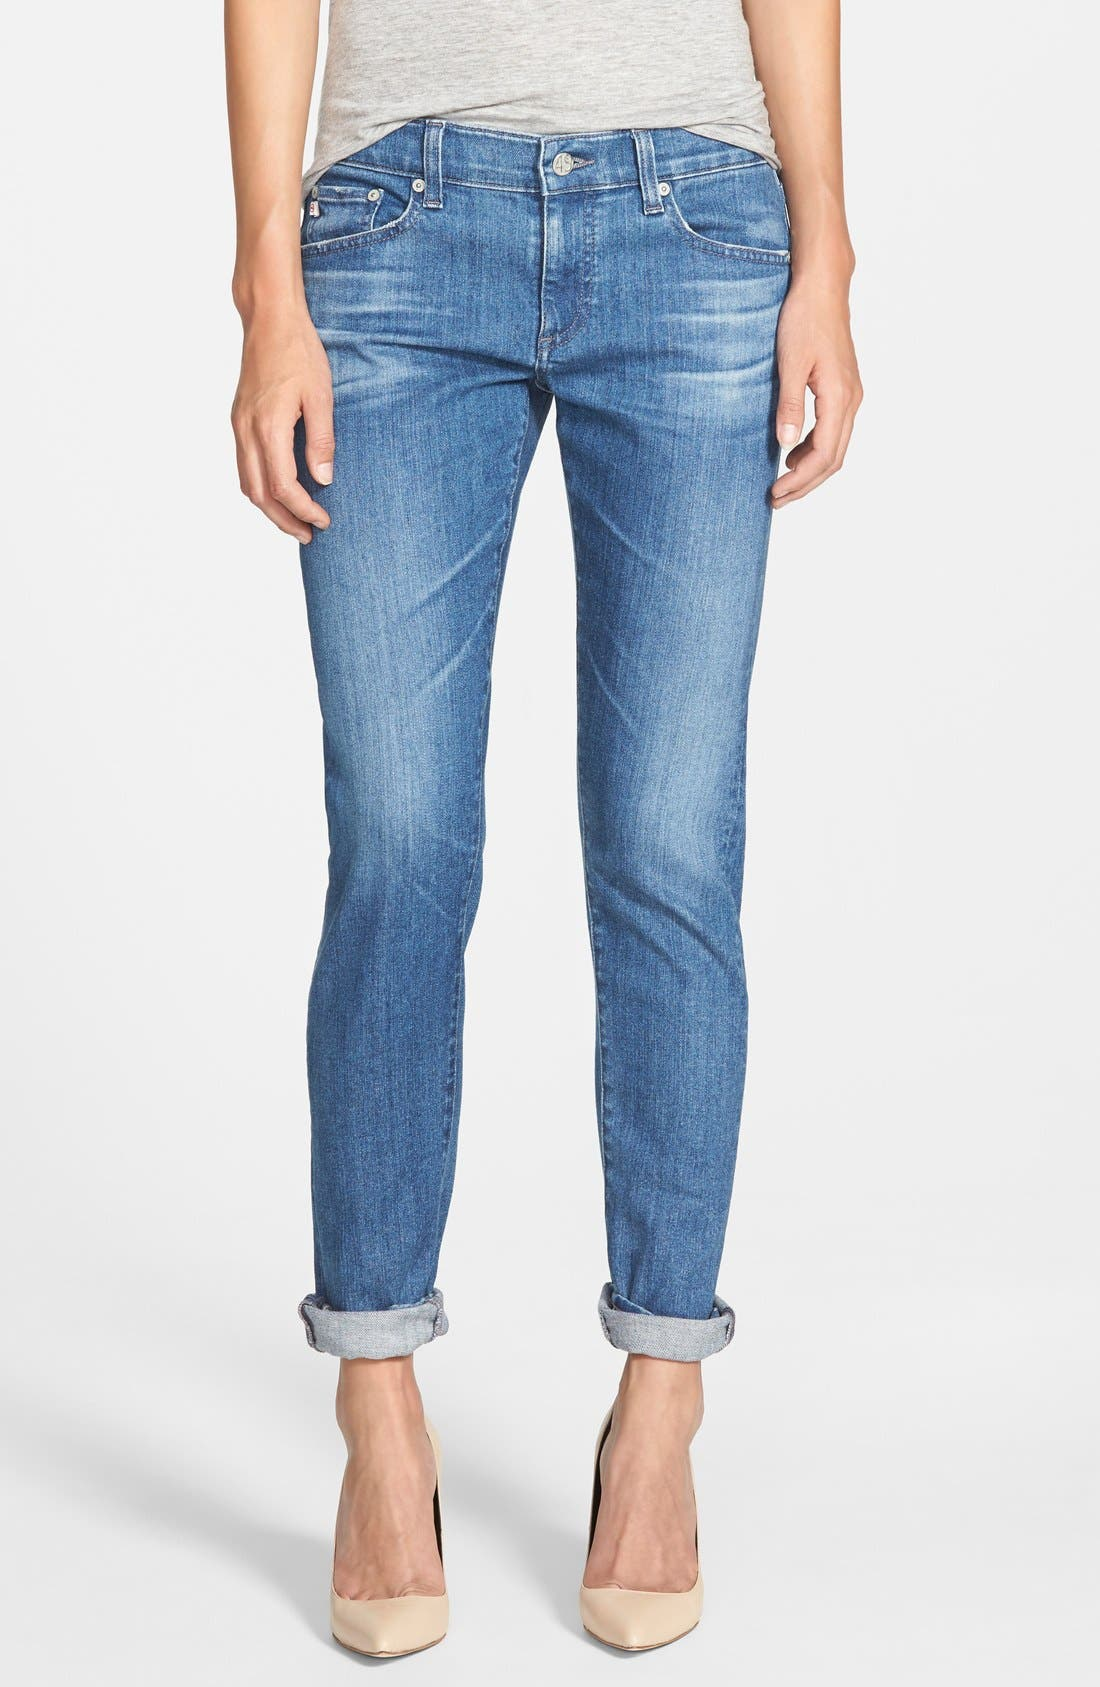 'The Nikki' Relaxed Skinny Jeans,                             Main thumbnail 1, color,                             400